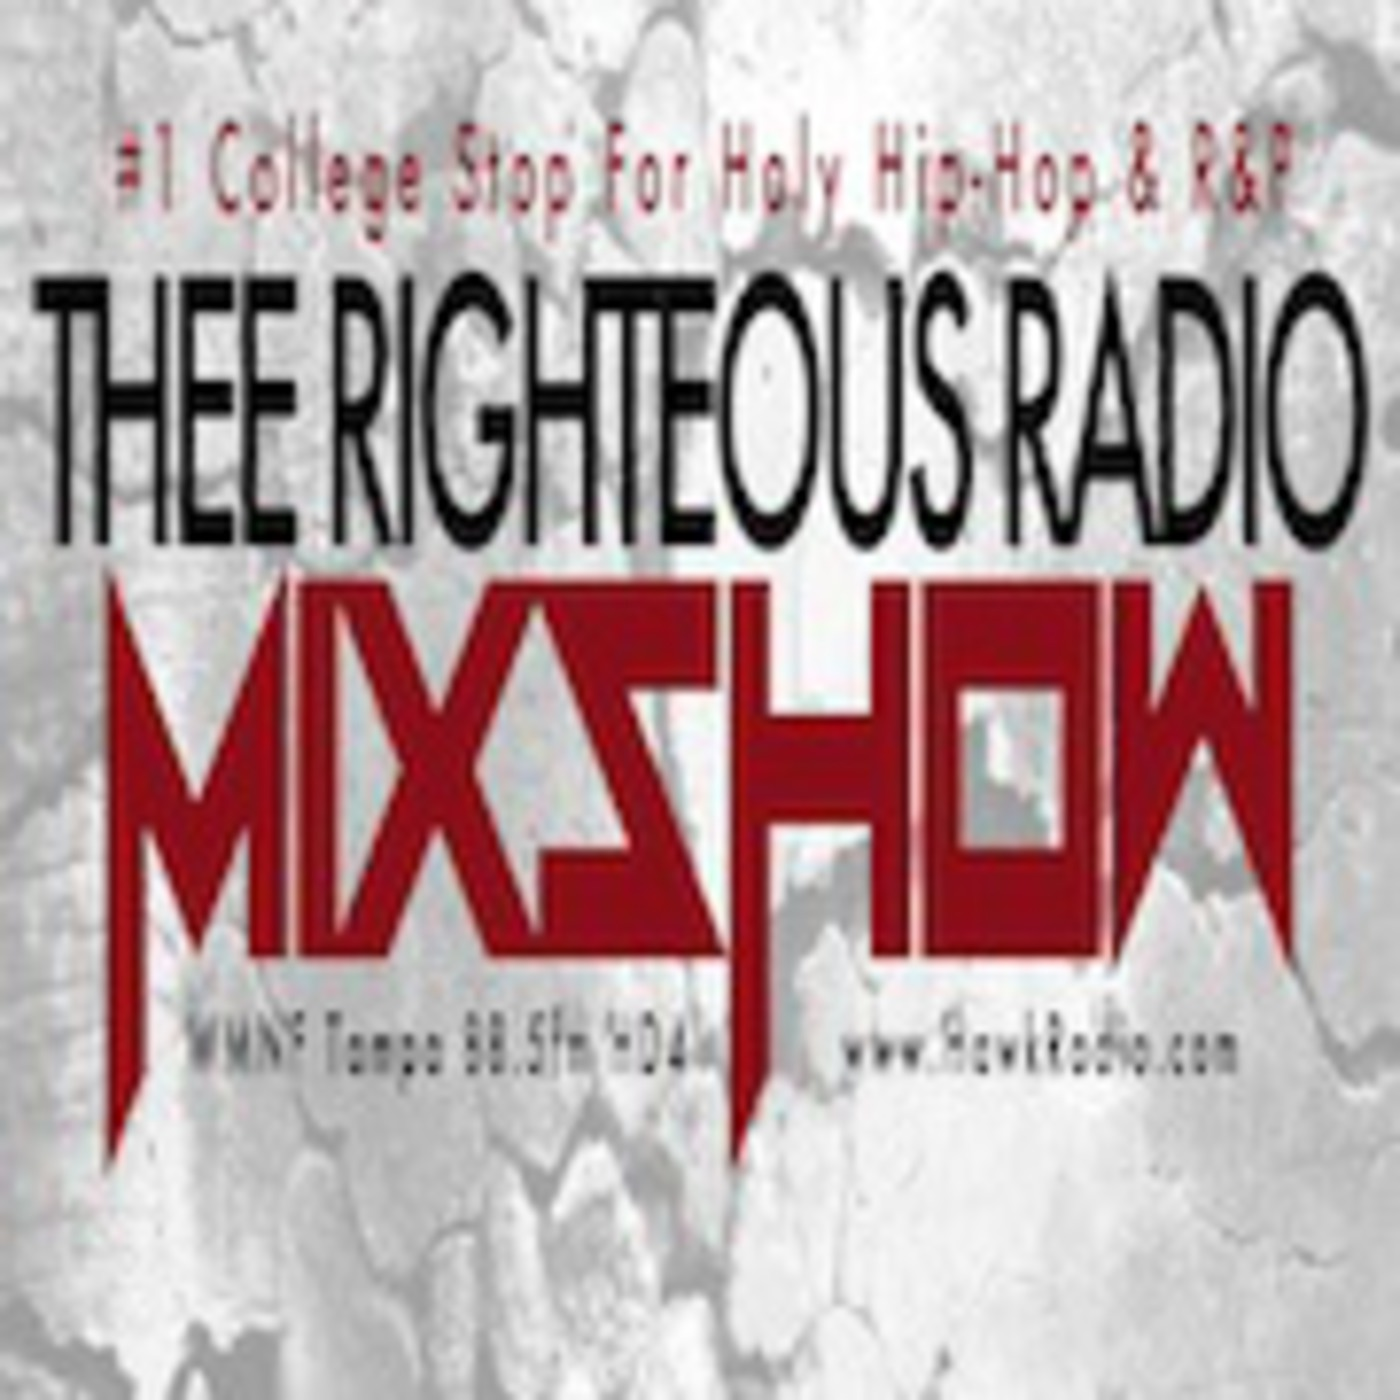 Thee Righteous Radio Mixshow